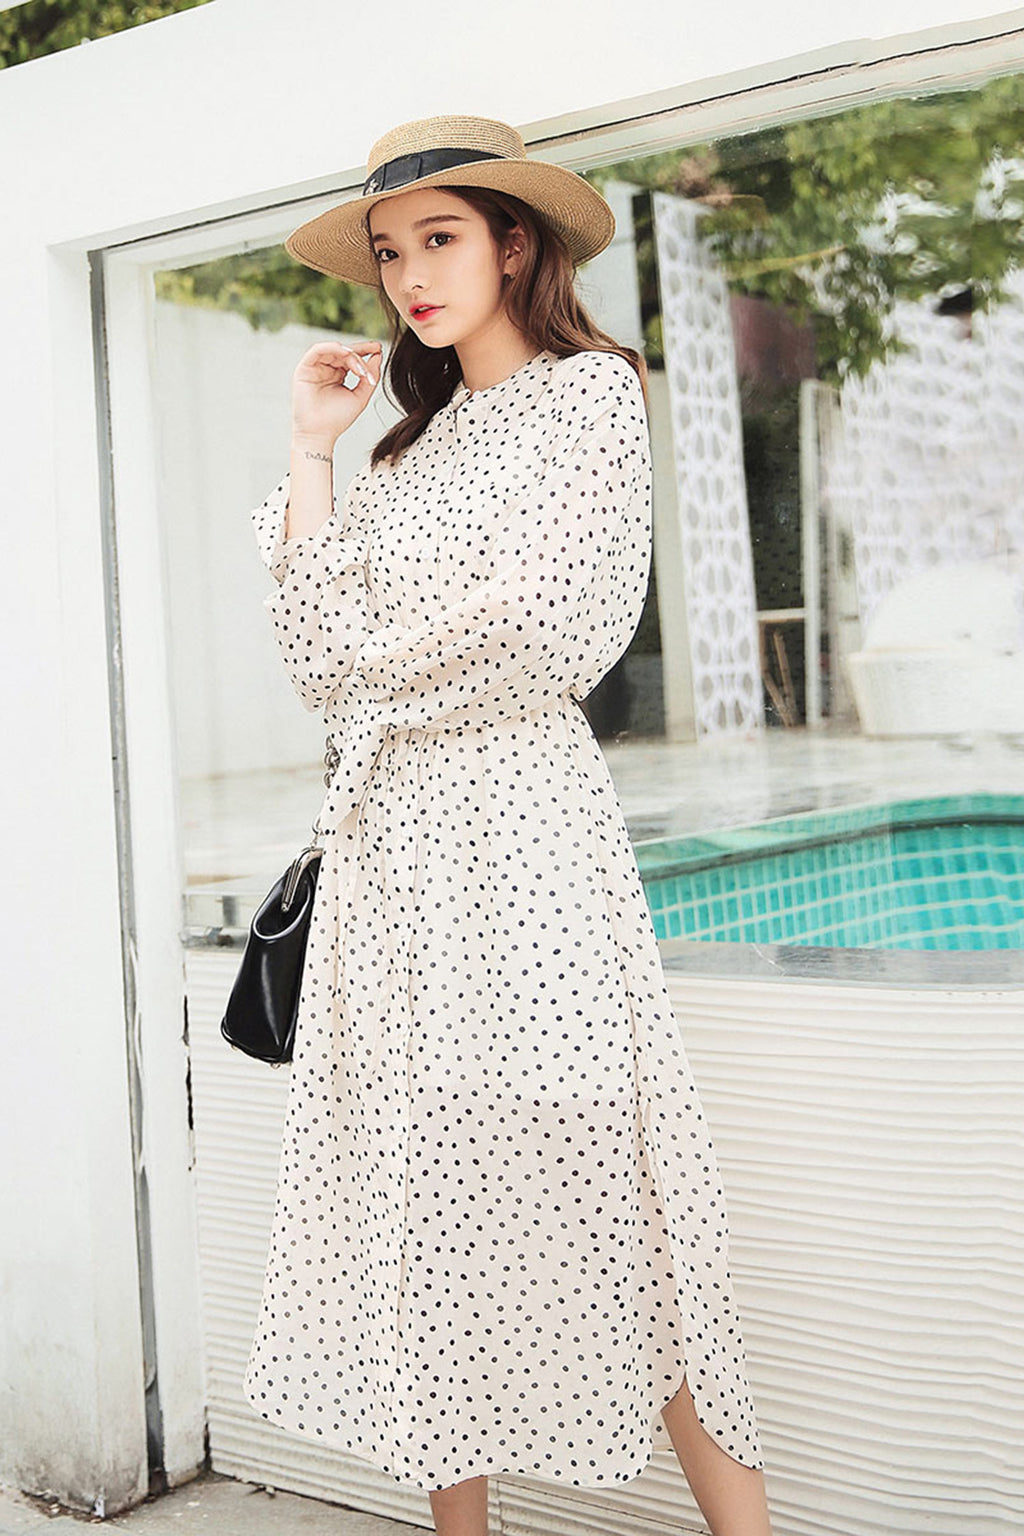 H-ring Chiffon Polka Dots Ruffle Hem Dress - 7GEGE